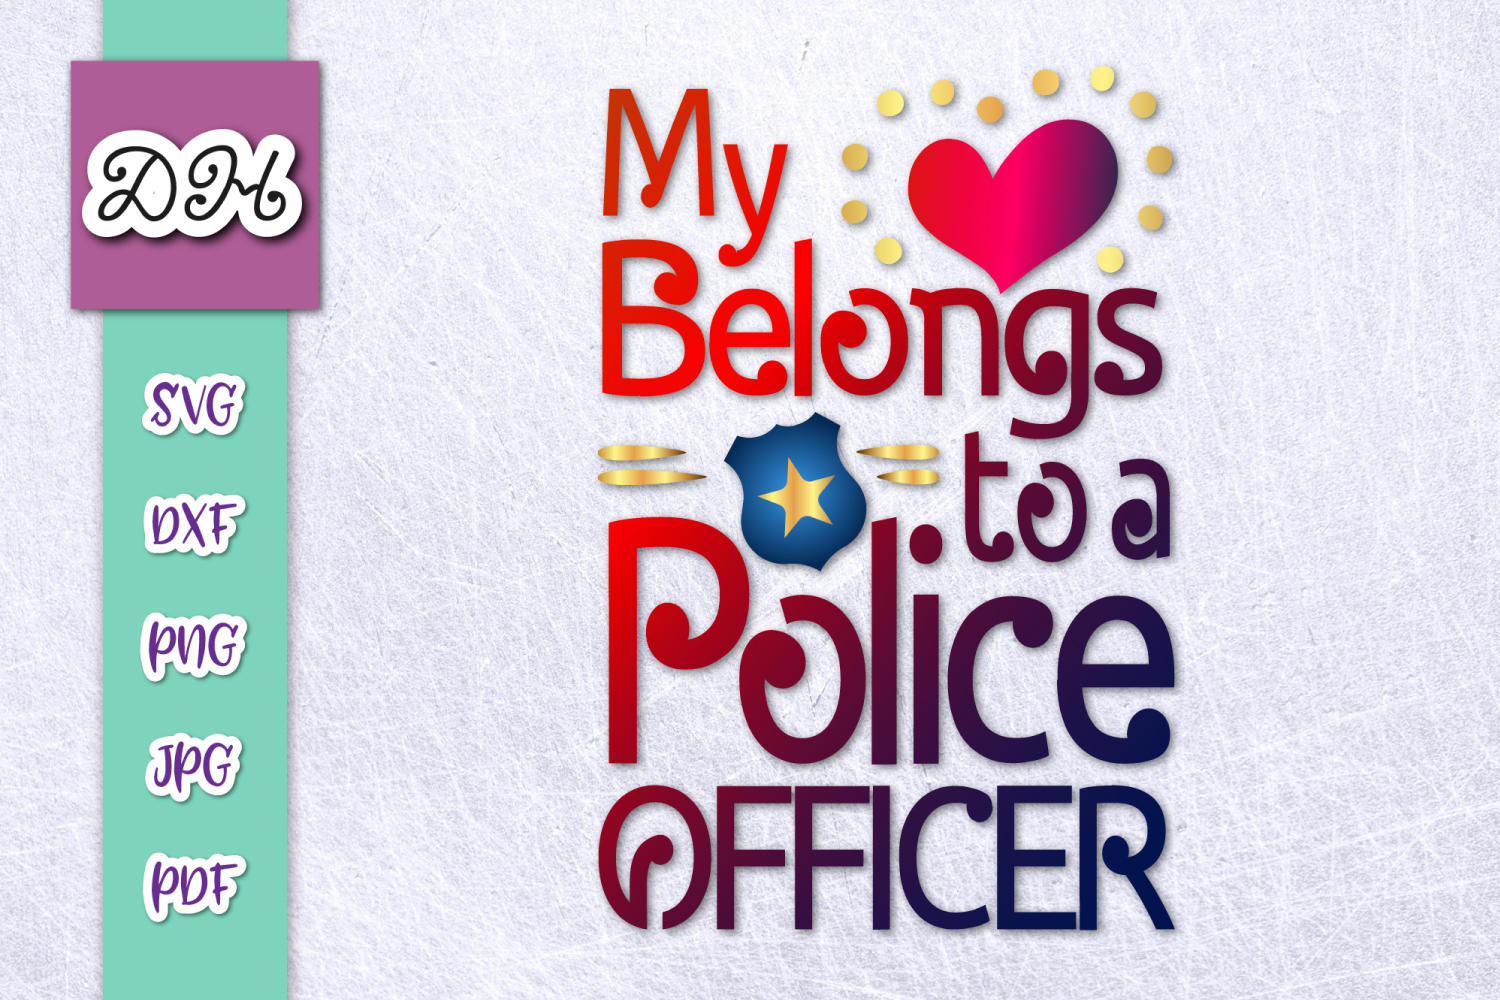 My Heart belongs to Police Officer Sign Print & Cut PNG SVG example image 1